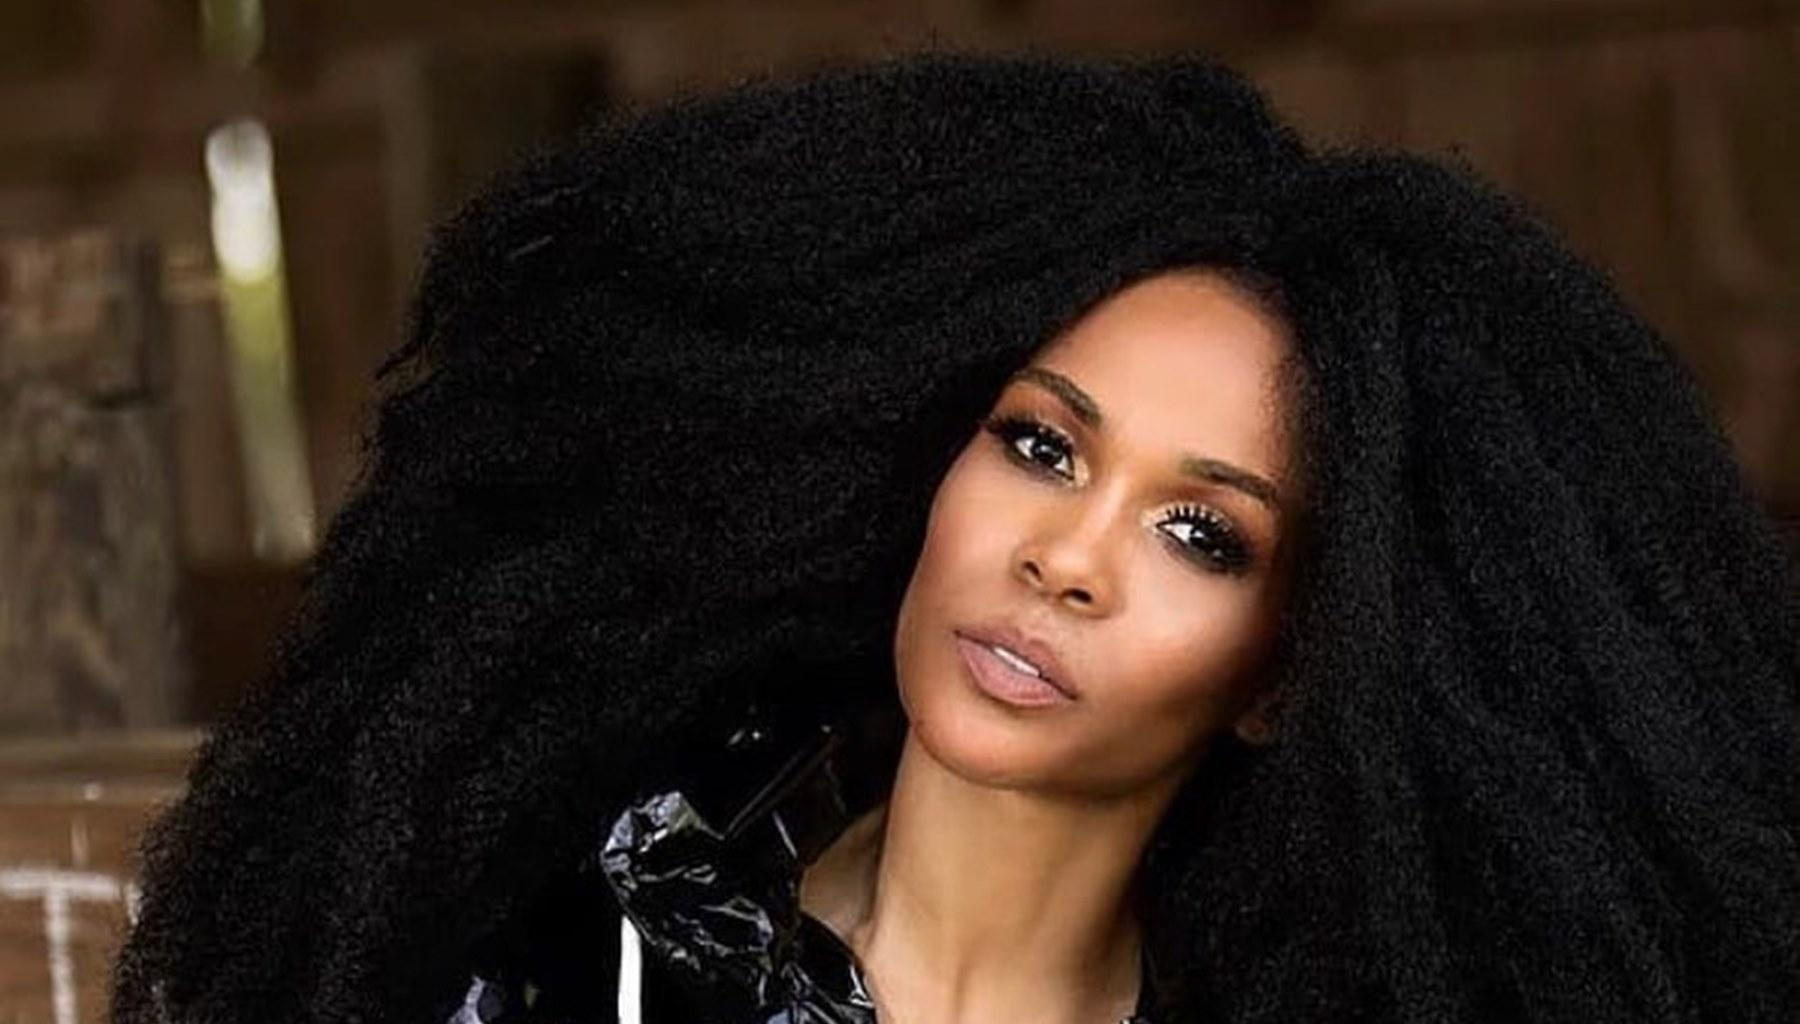 Kelly Rowland Shares Sweet Photo Of Herself, Beyoncé, And Michelle Williams For The Diva's Birthday